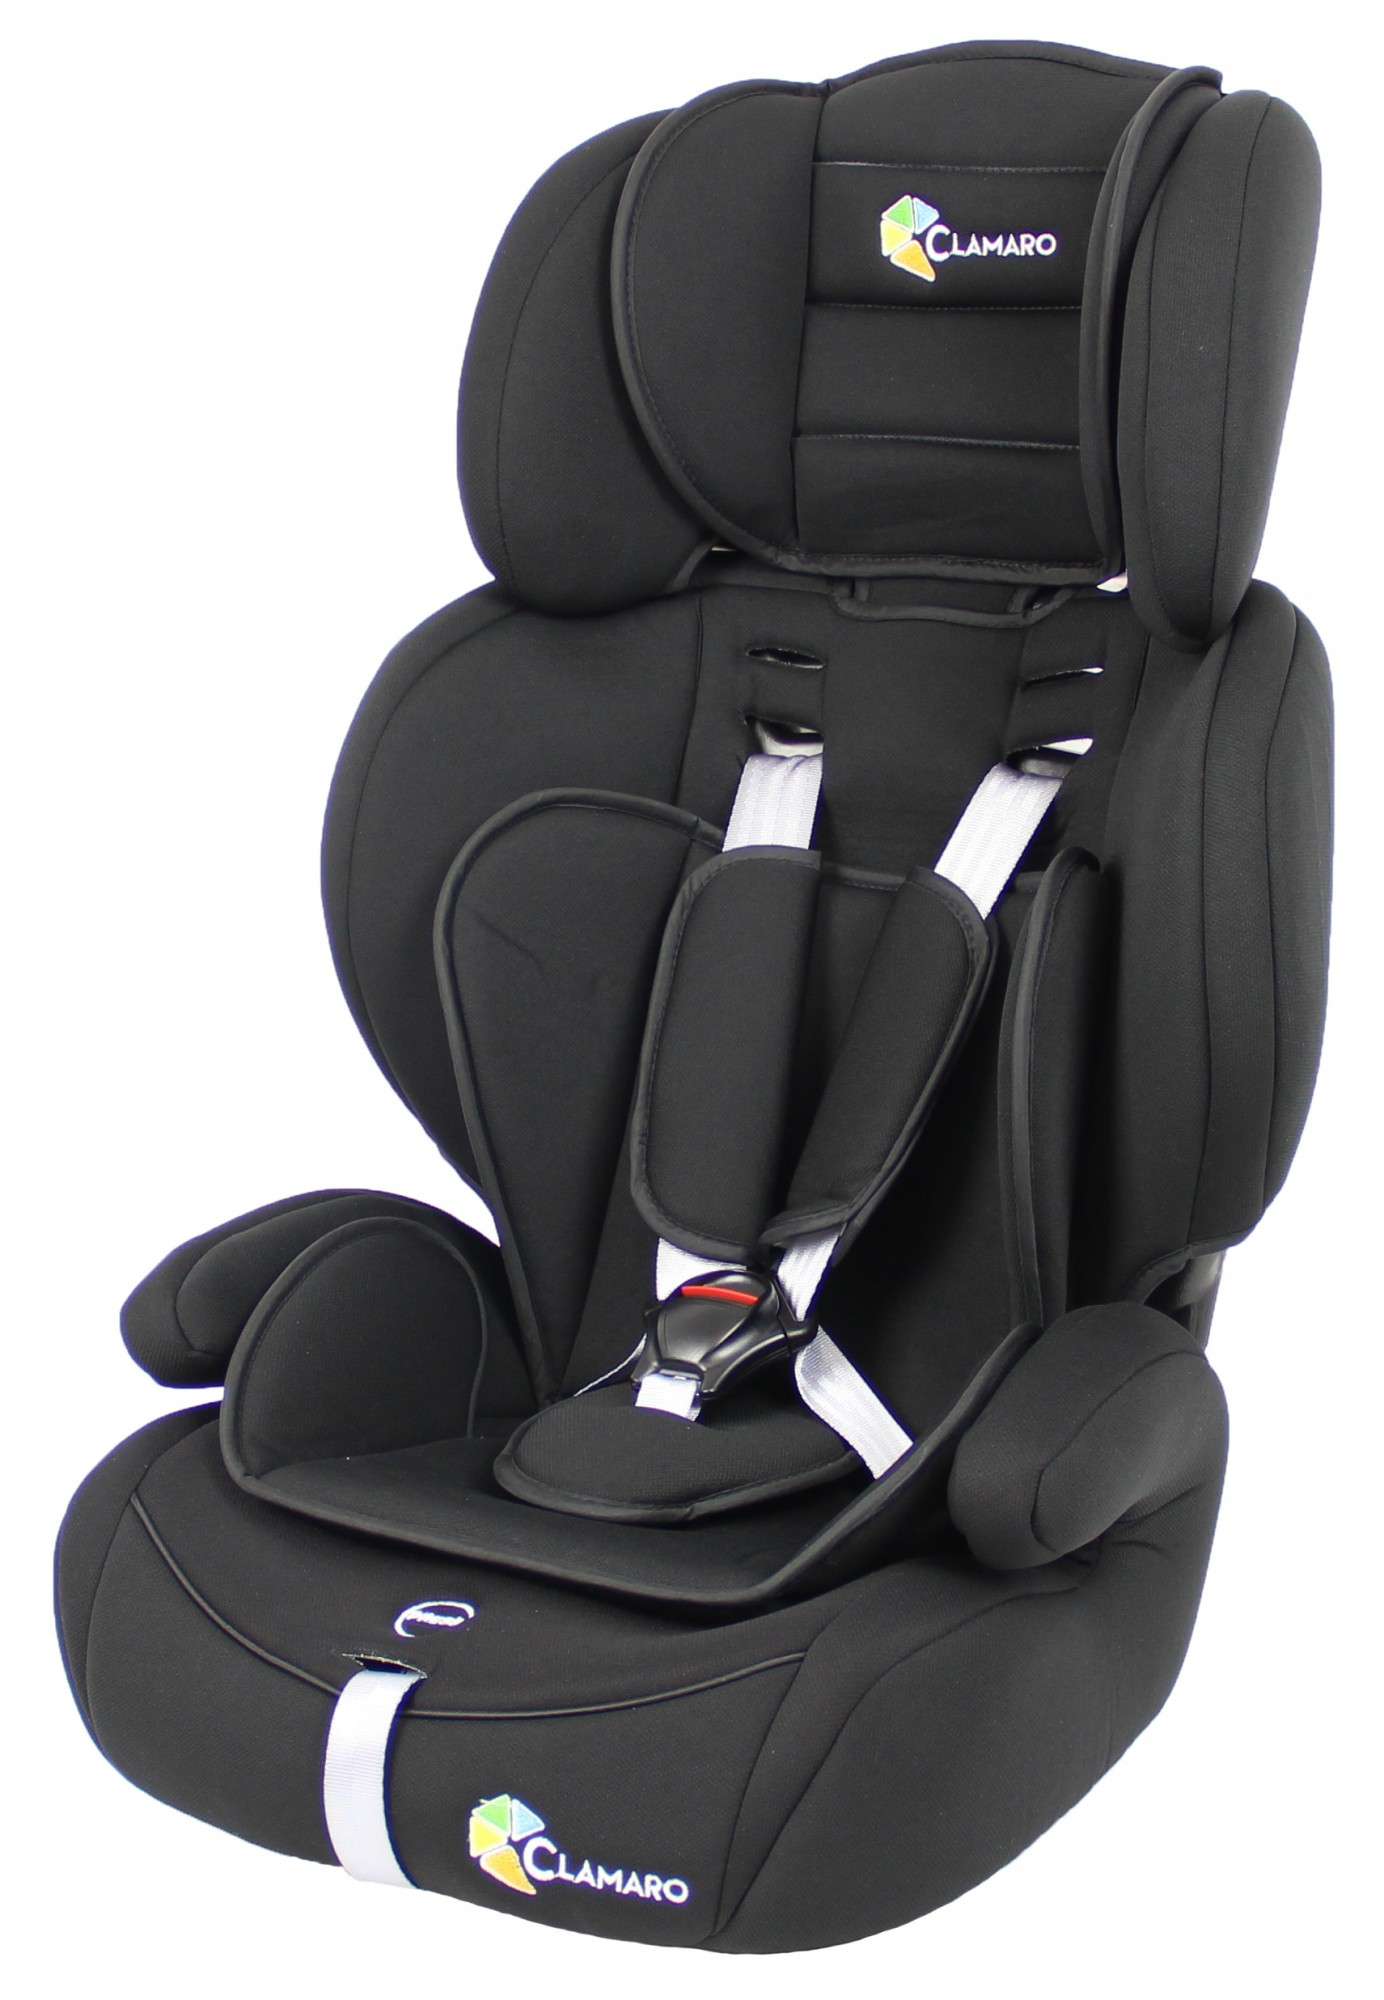 clamaro kinderautositz 9 36 kg kopfst tze verstellbar mitwachsend auto kindersitz f r kinder. Black Bedroom Furniture Sets. Home Design Ideas